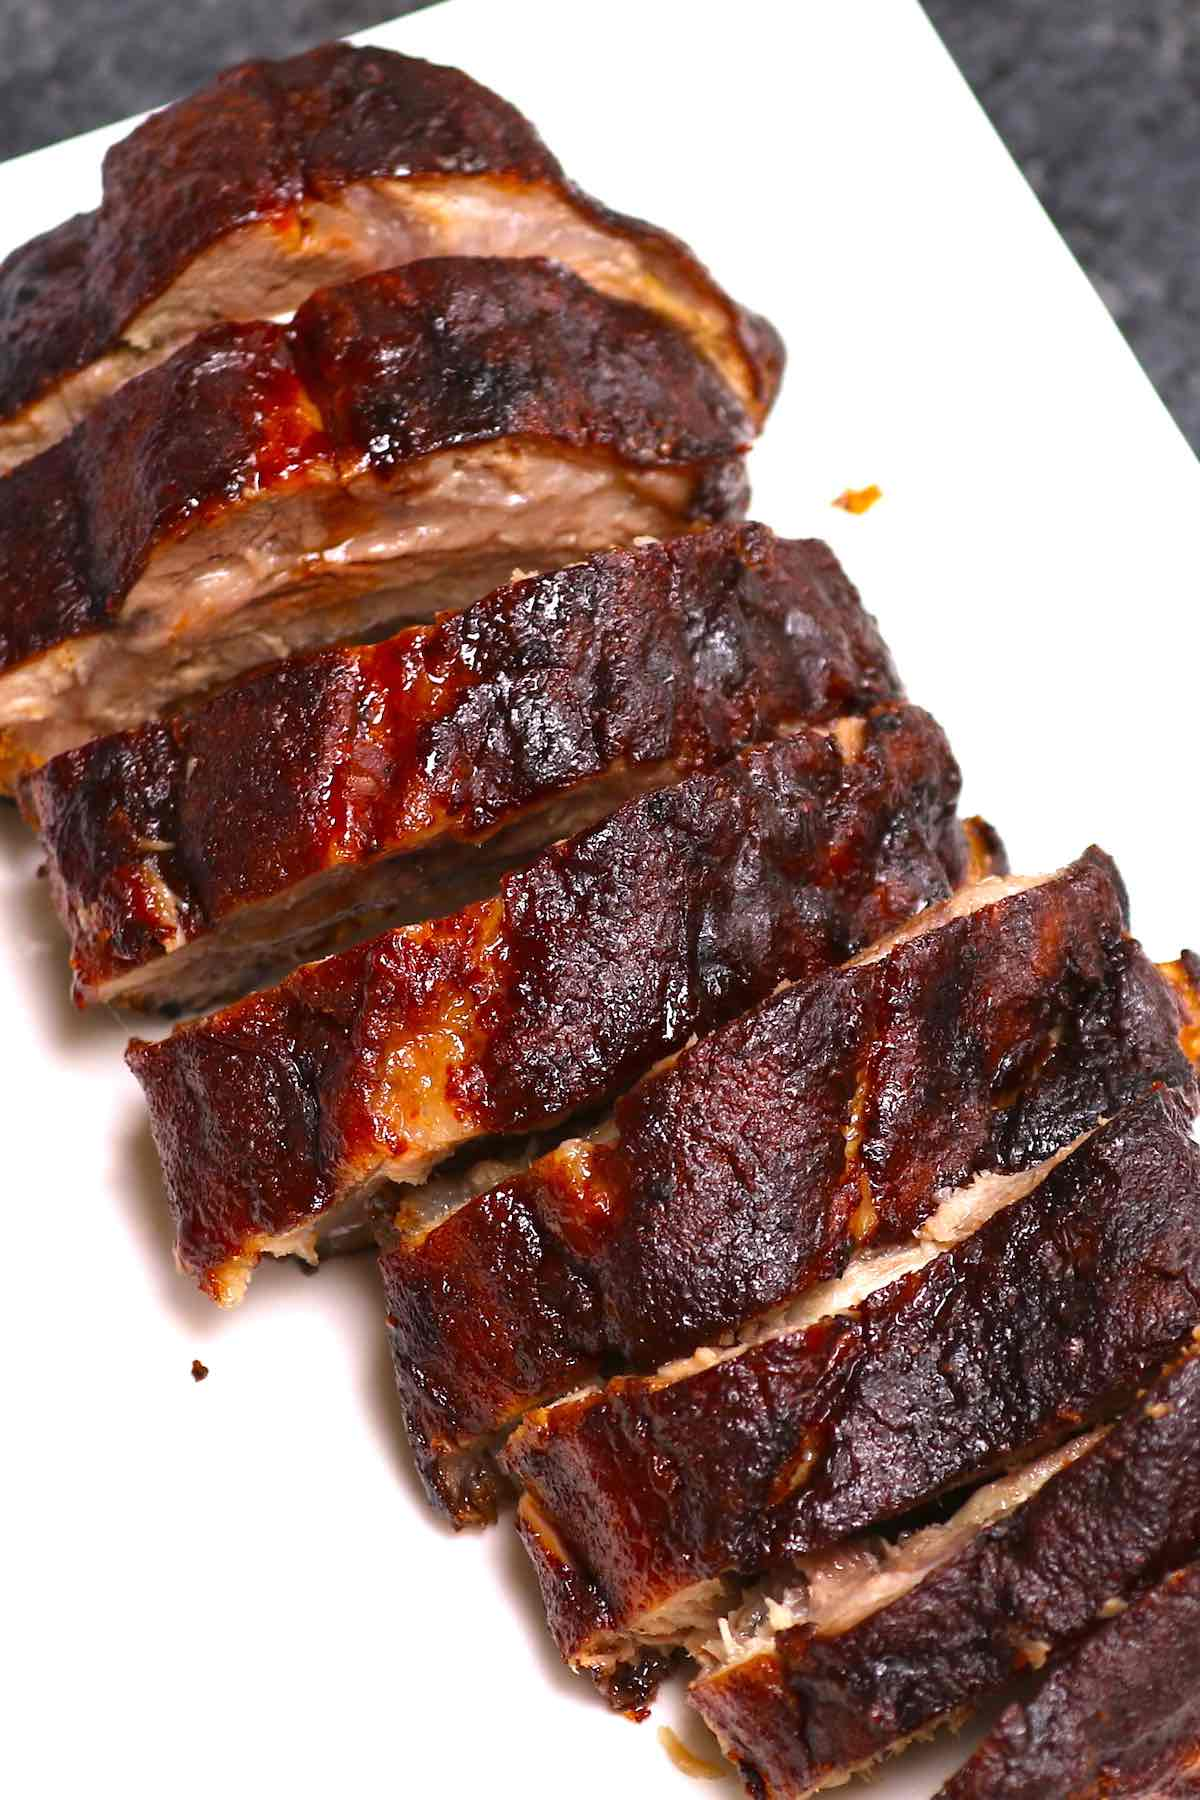 Overhead view of 3 2 1 ribs on a serving platter after having been cut into individual sections